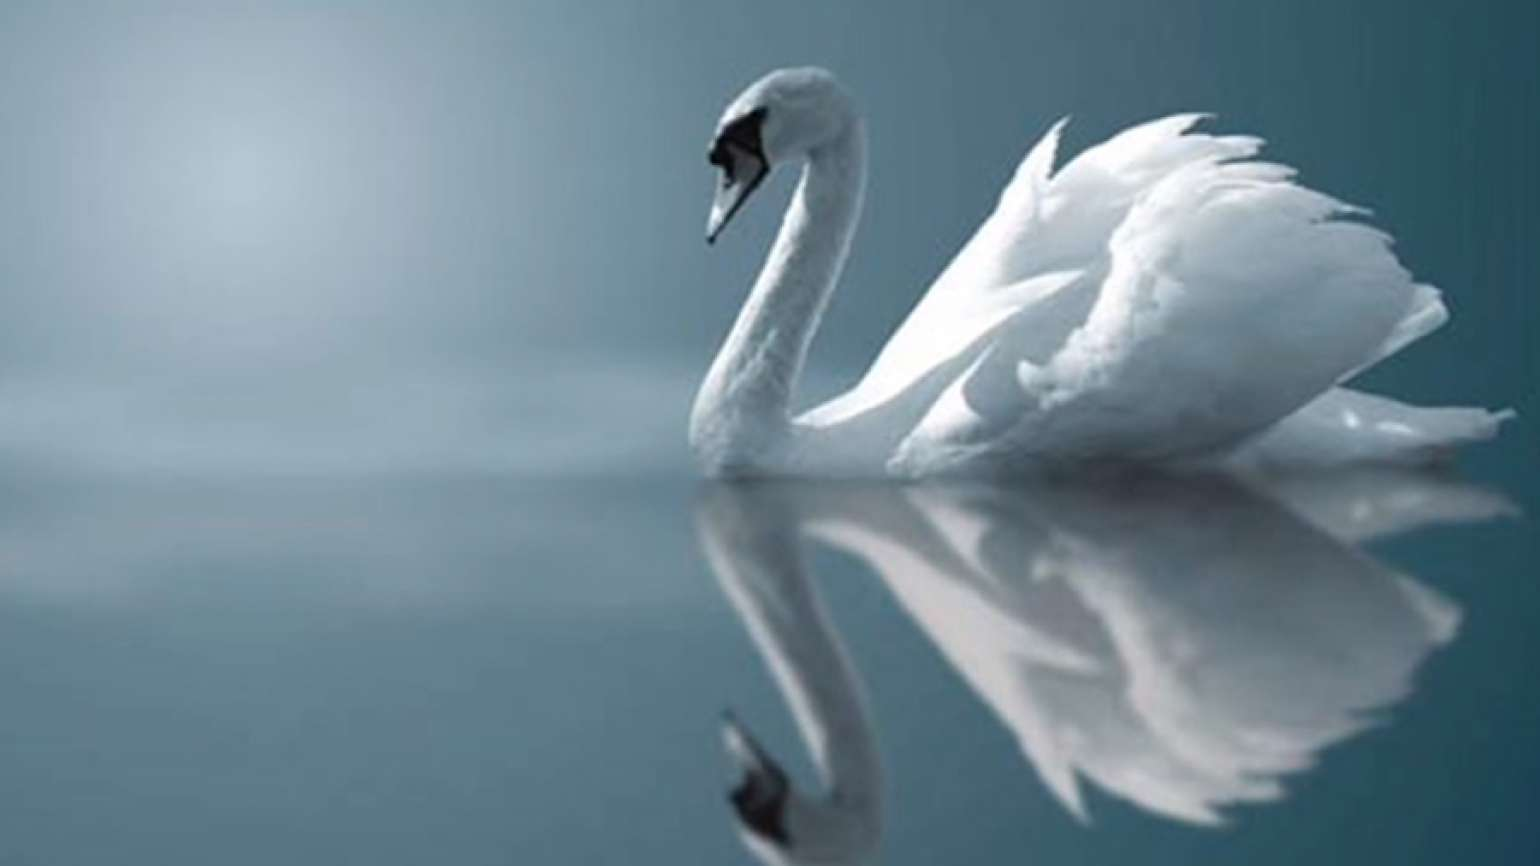 Guideposts: A graceful swan on a still lake.